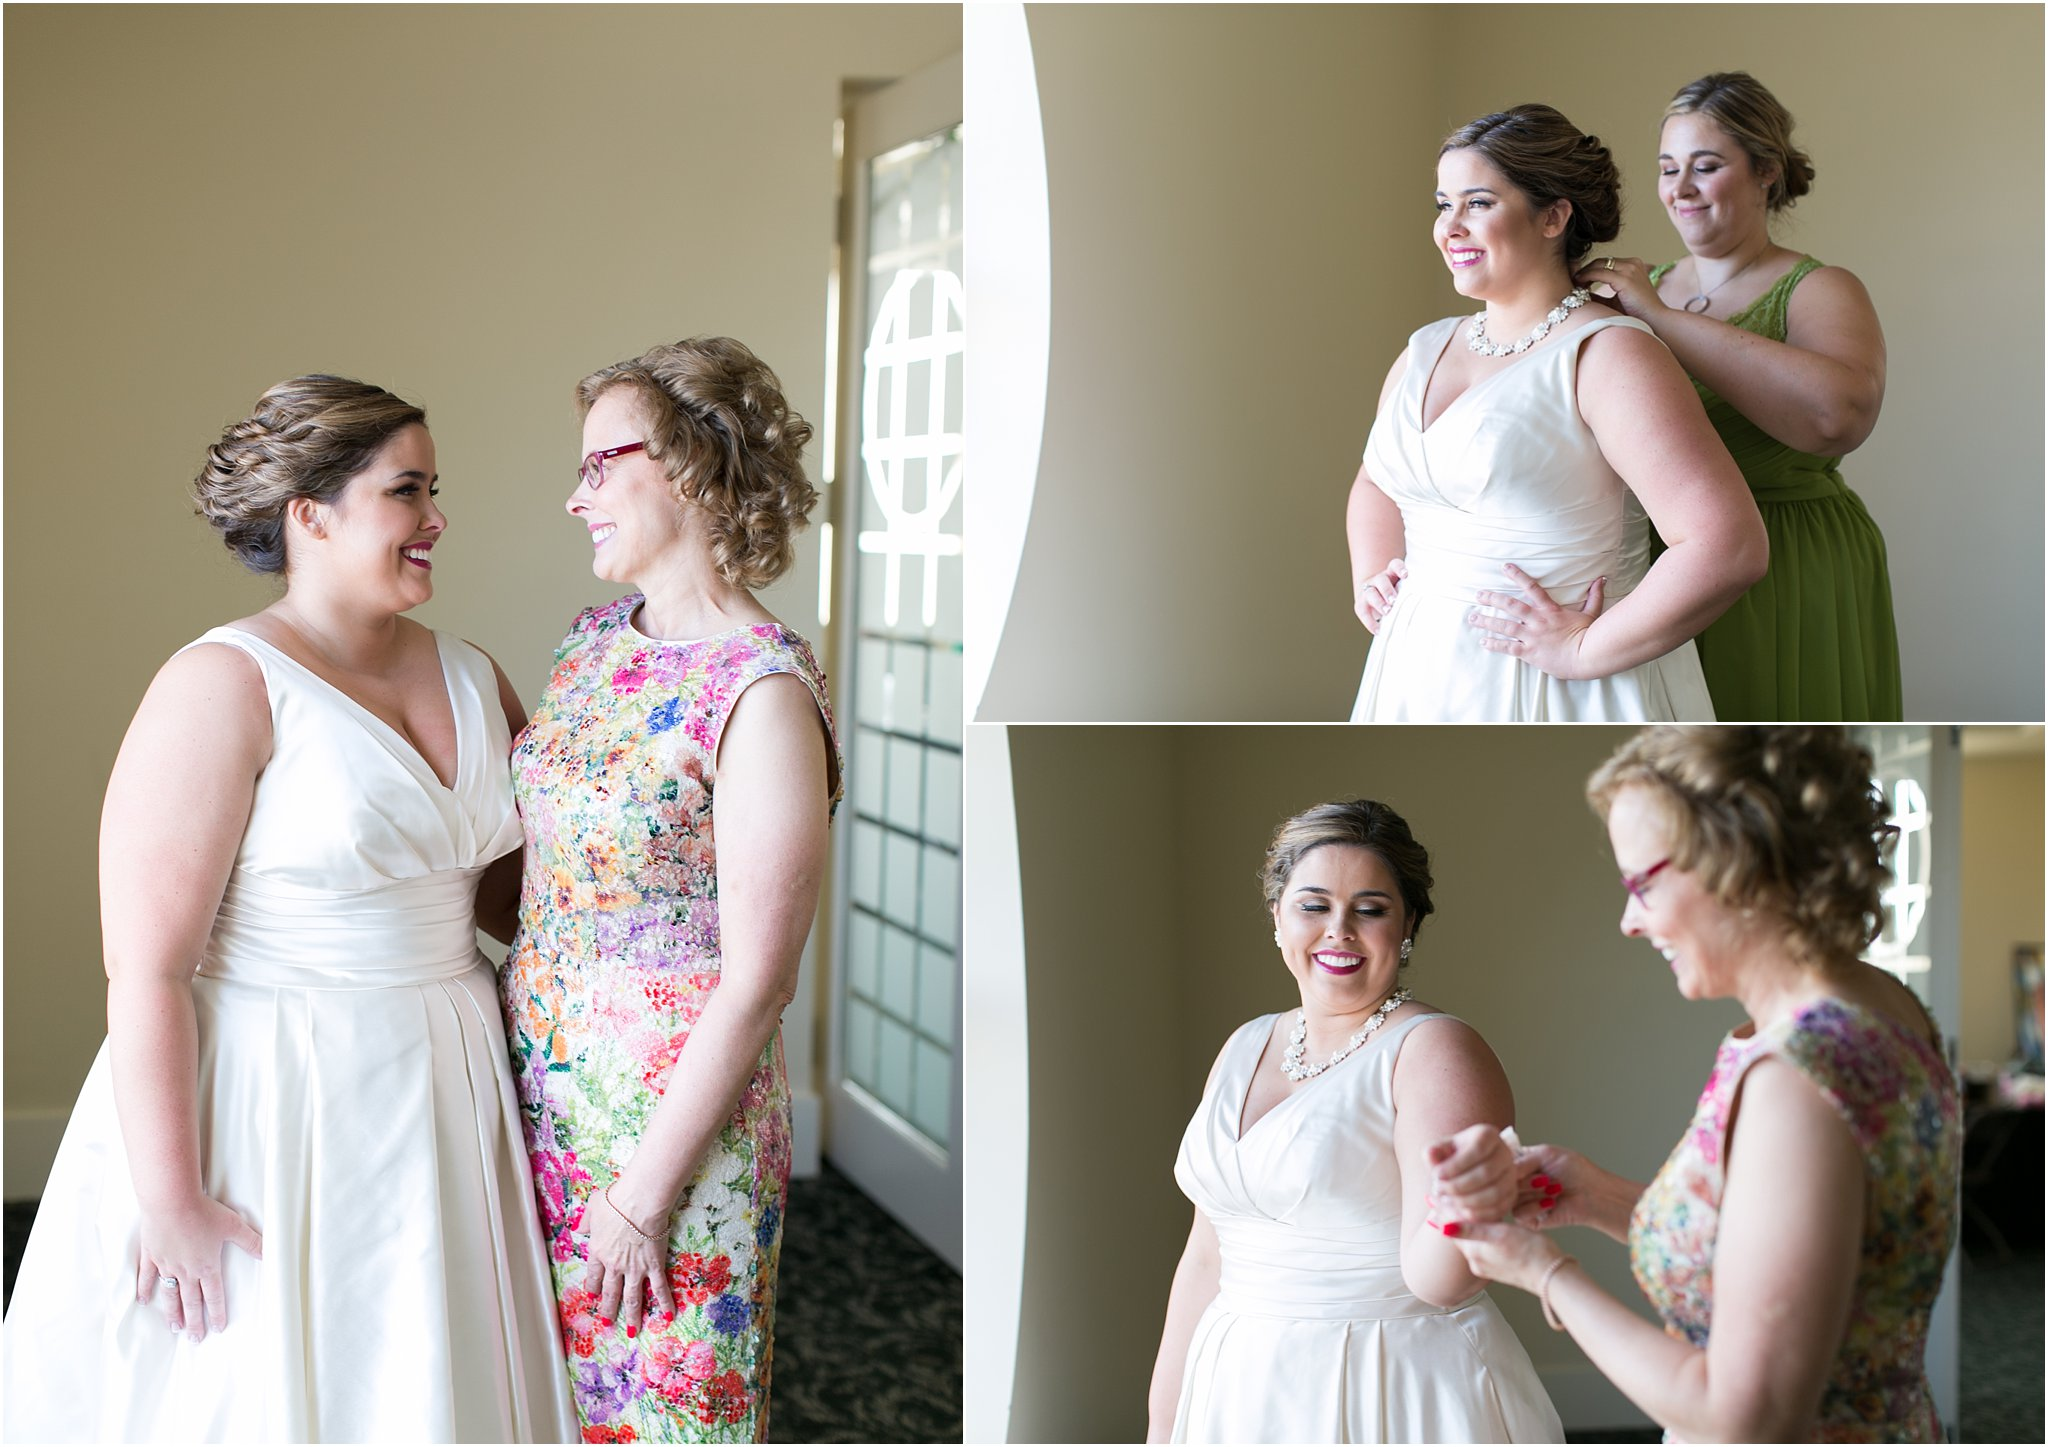 va_jessica_ryan_photography_virginia_wedding_norfolk_harrison_opera_house_norfolk_arts_district_portraits_3765